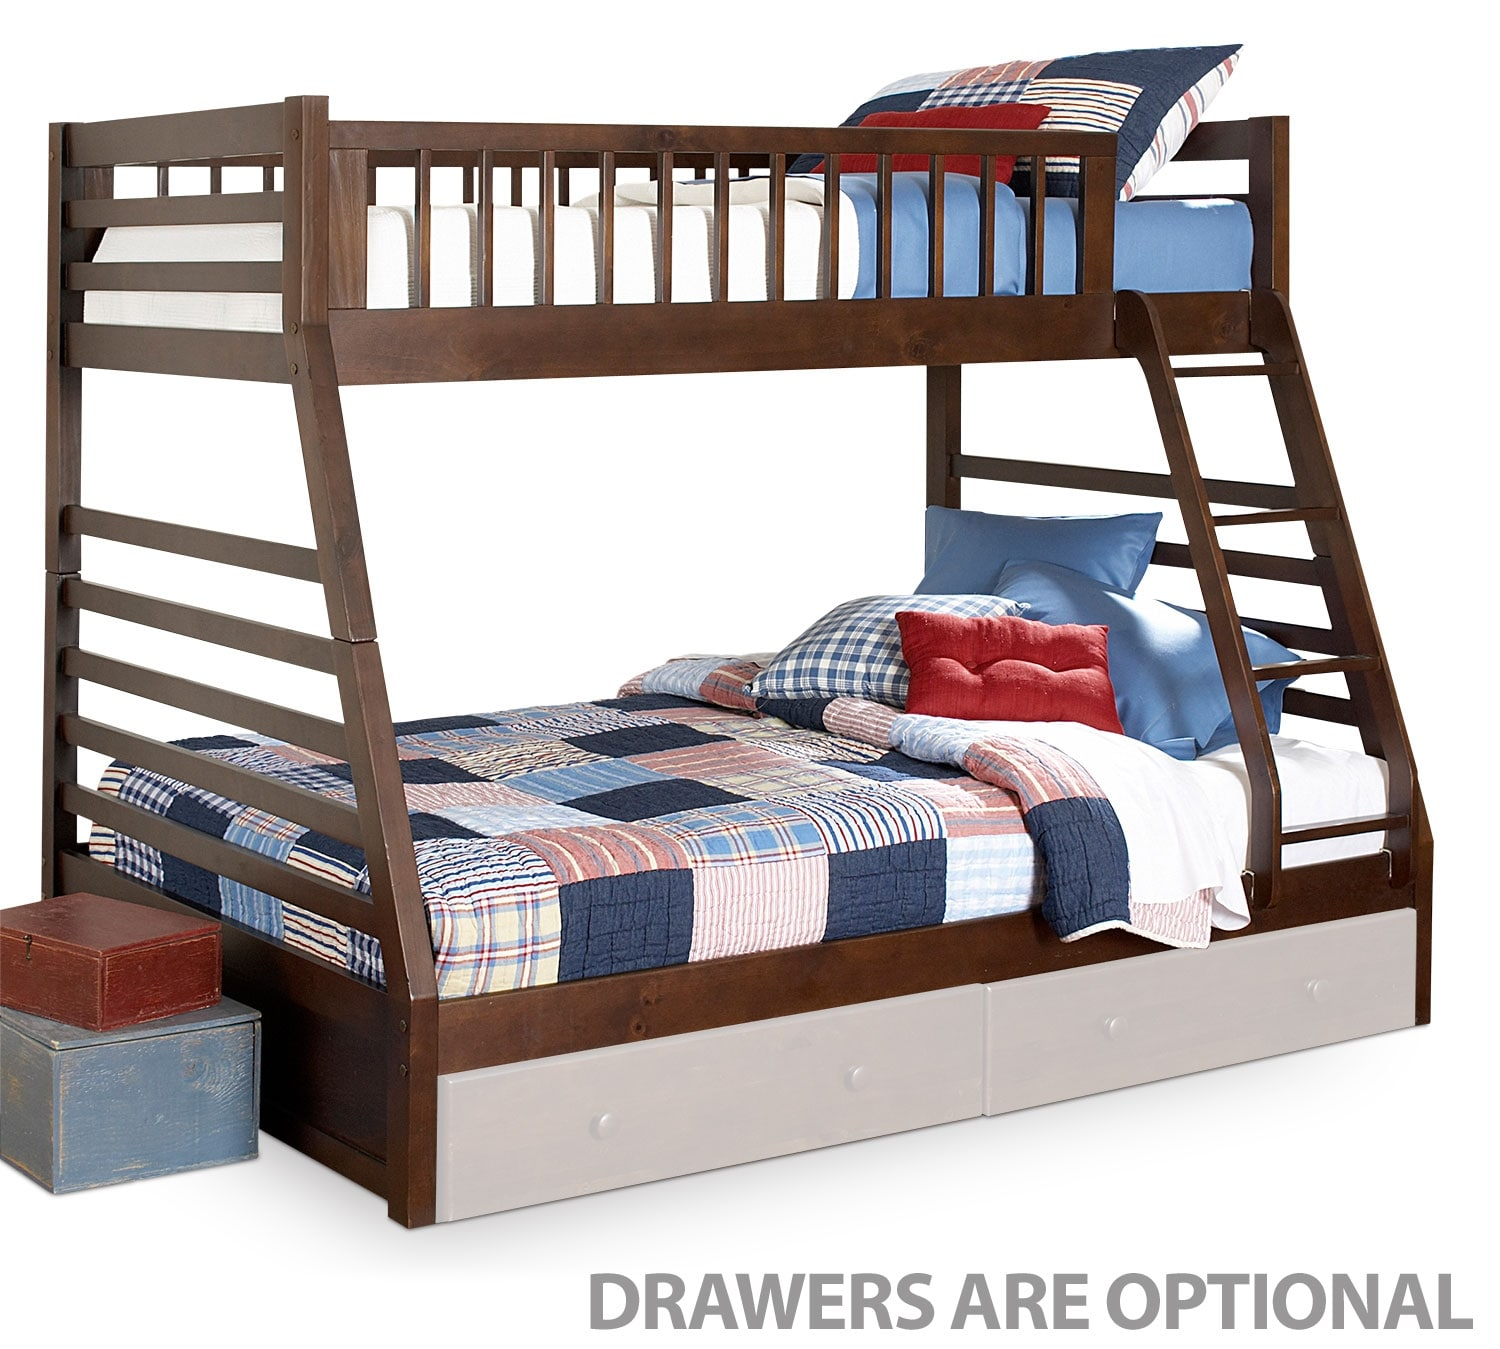 Starship Bunk Bed Set - Chocolate Cherry